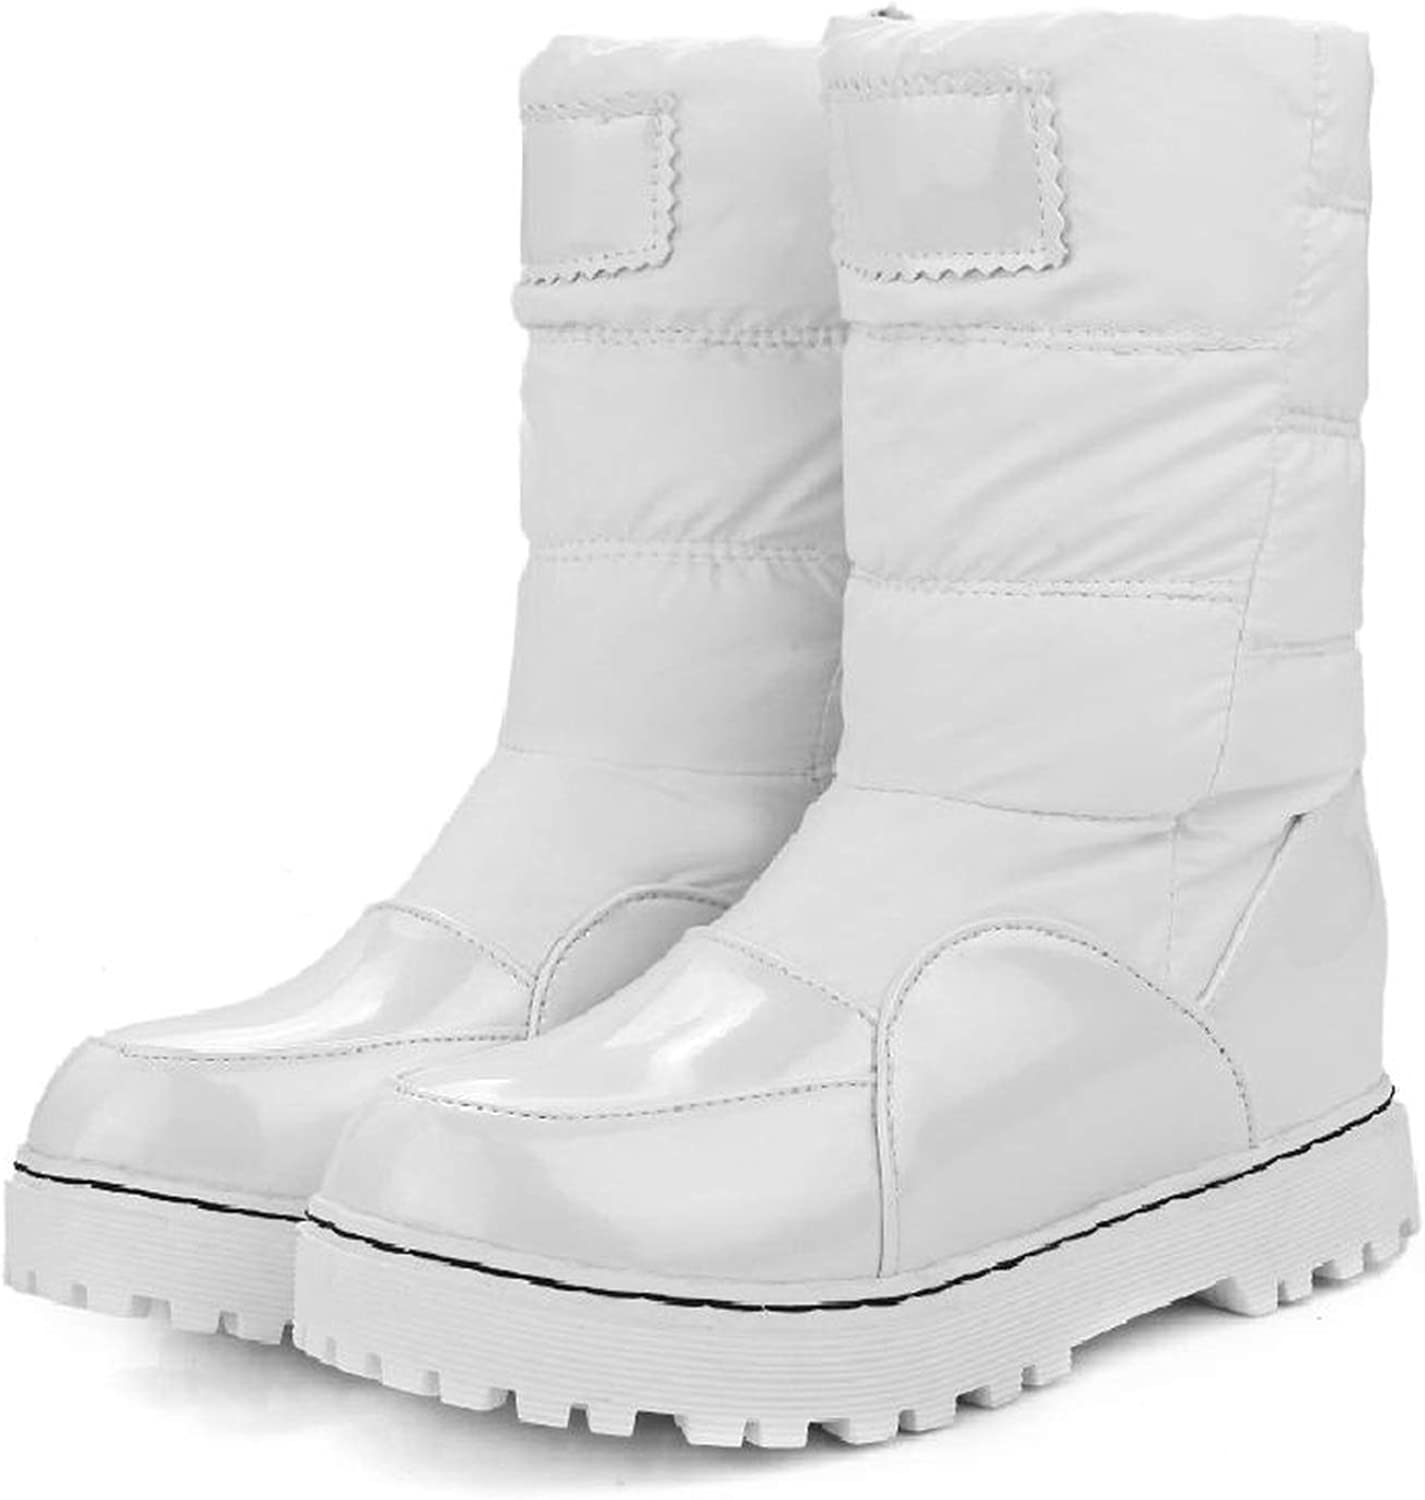 Surprisedresshatglasses-loafers-shoes Taoffen Mother Boots Slip-Resistant Waterproof Cotton-Padded Maternity Plush Snow Boots 33-43